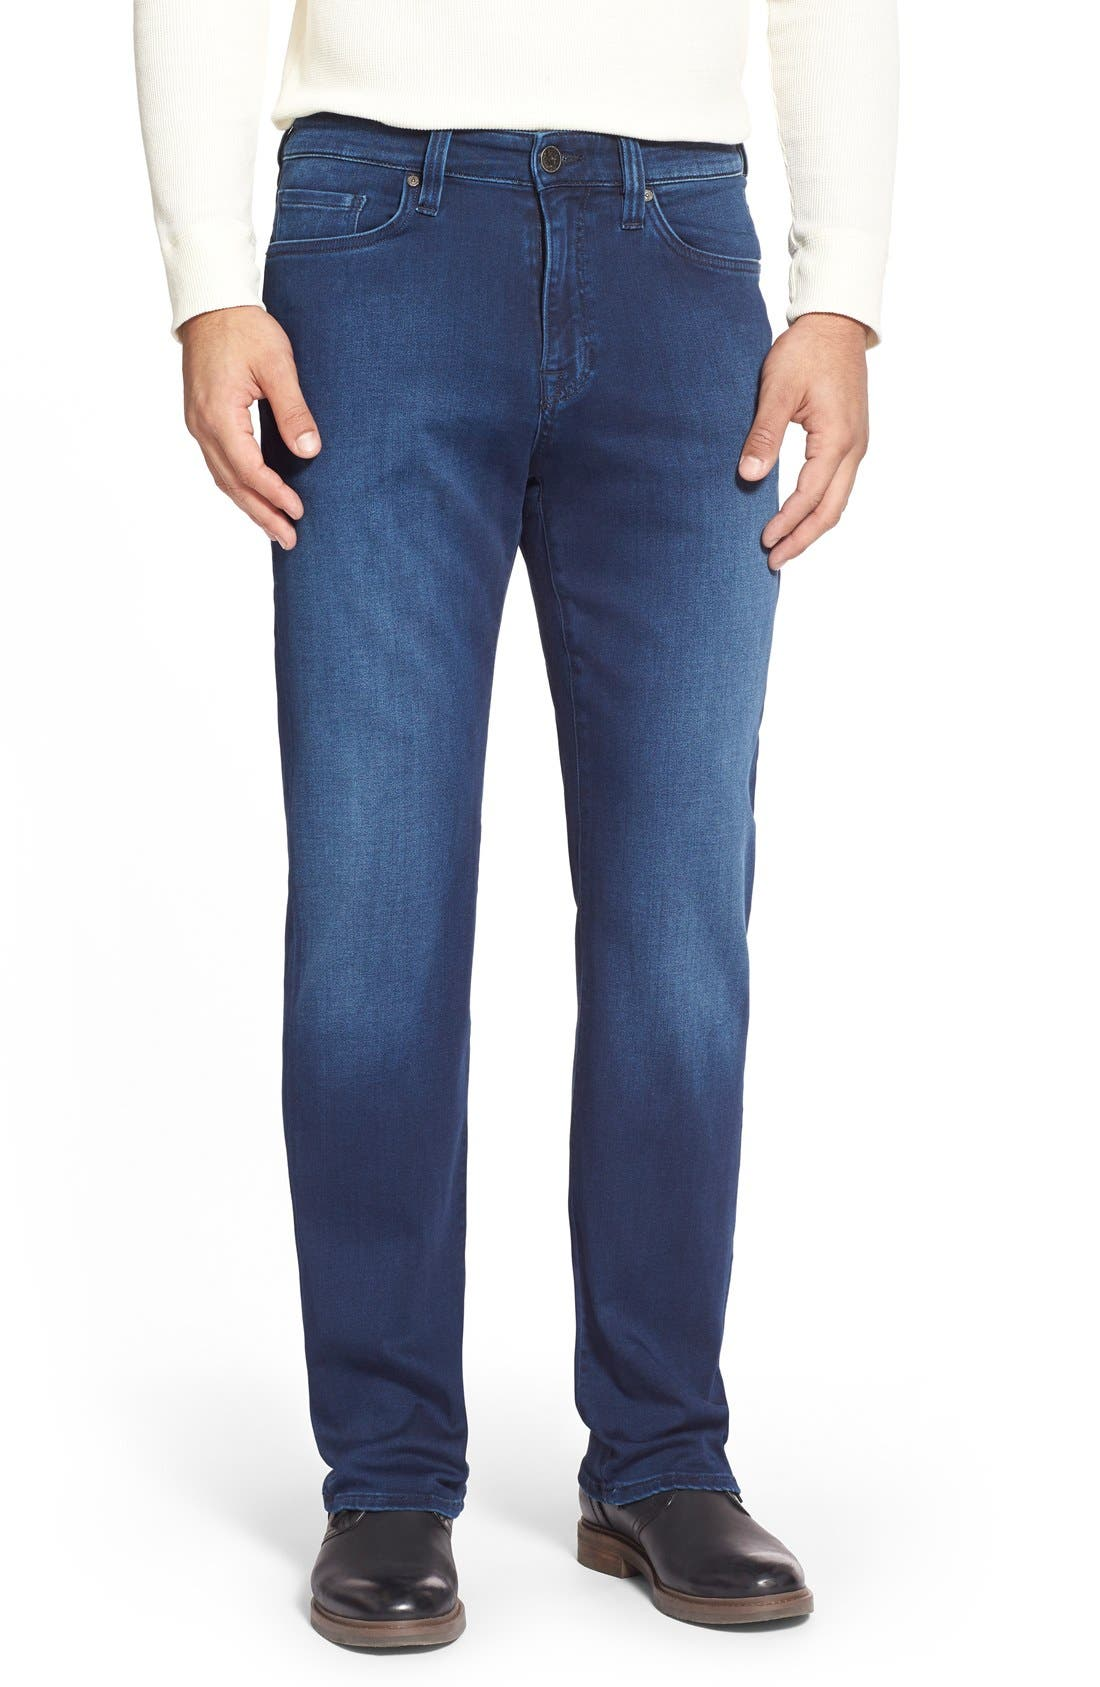 'Charisma' Relaxed Fit Jeans,                         Main,                         color, Select Indigo